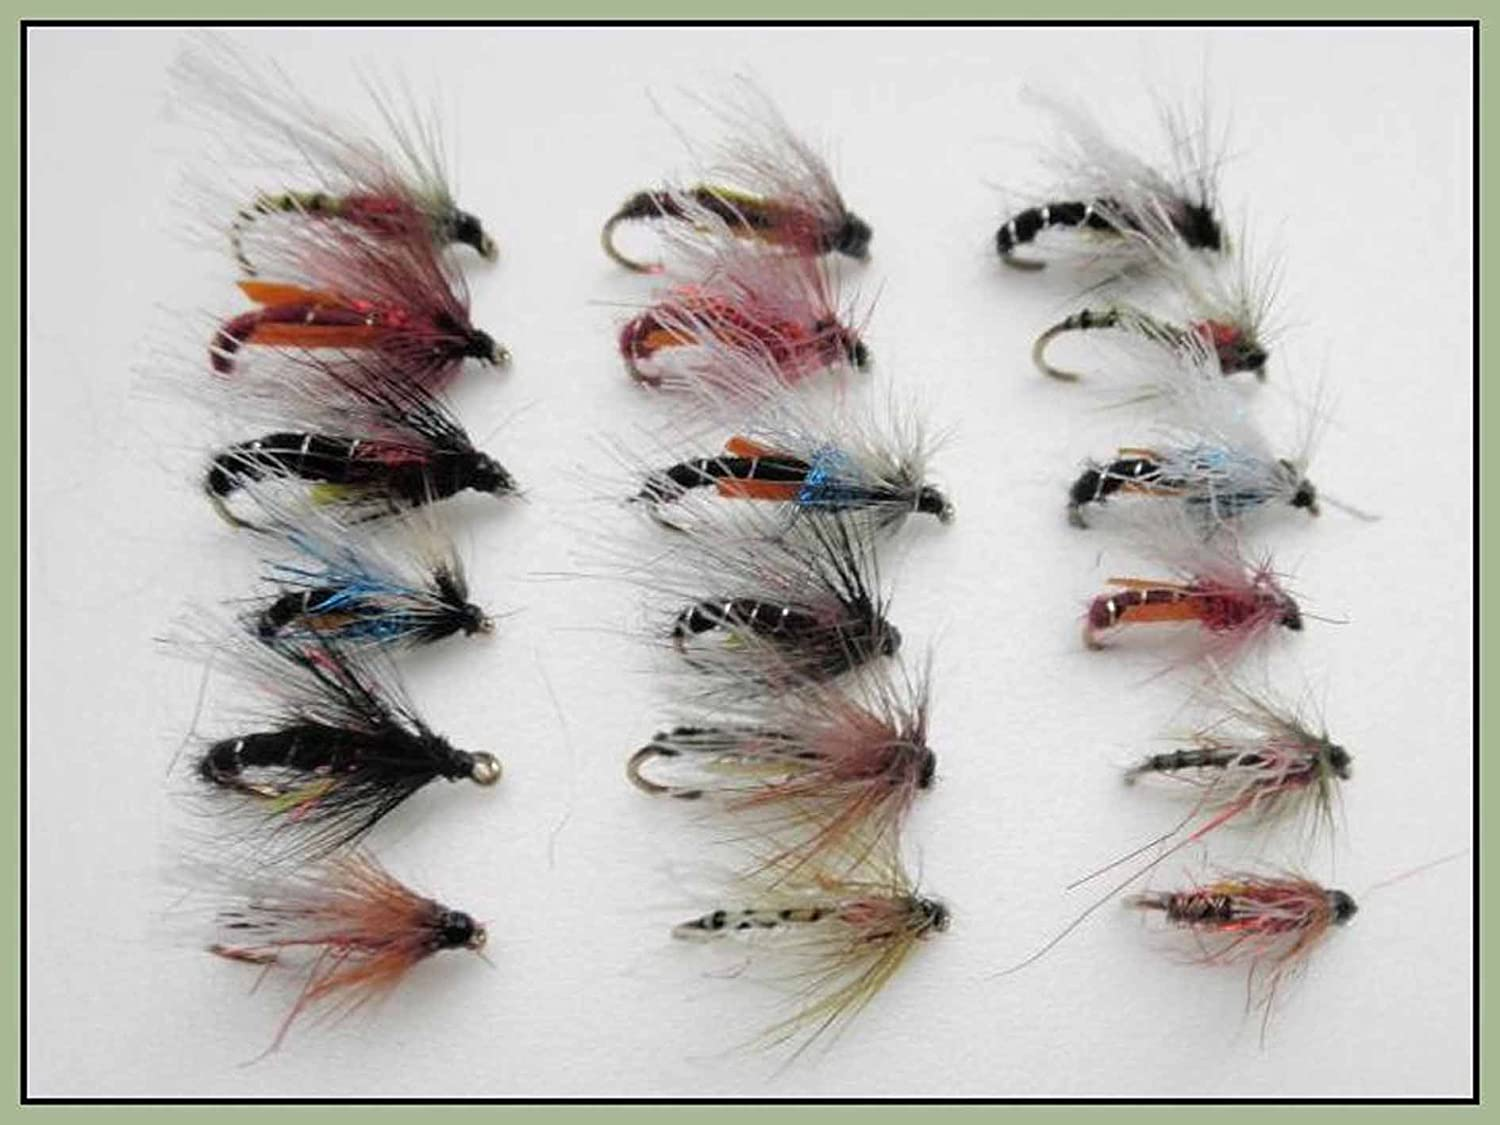 18 Pack Mixed Colours Trout Flies For Fly Fishing Emerger Flies Three Sizes